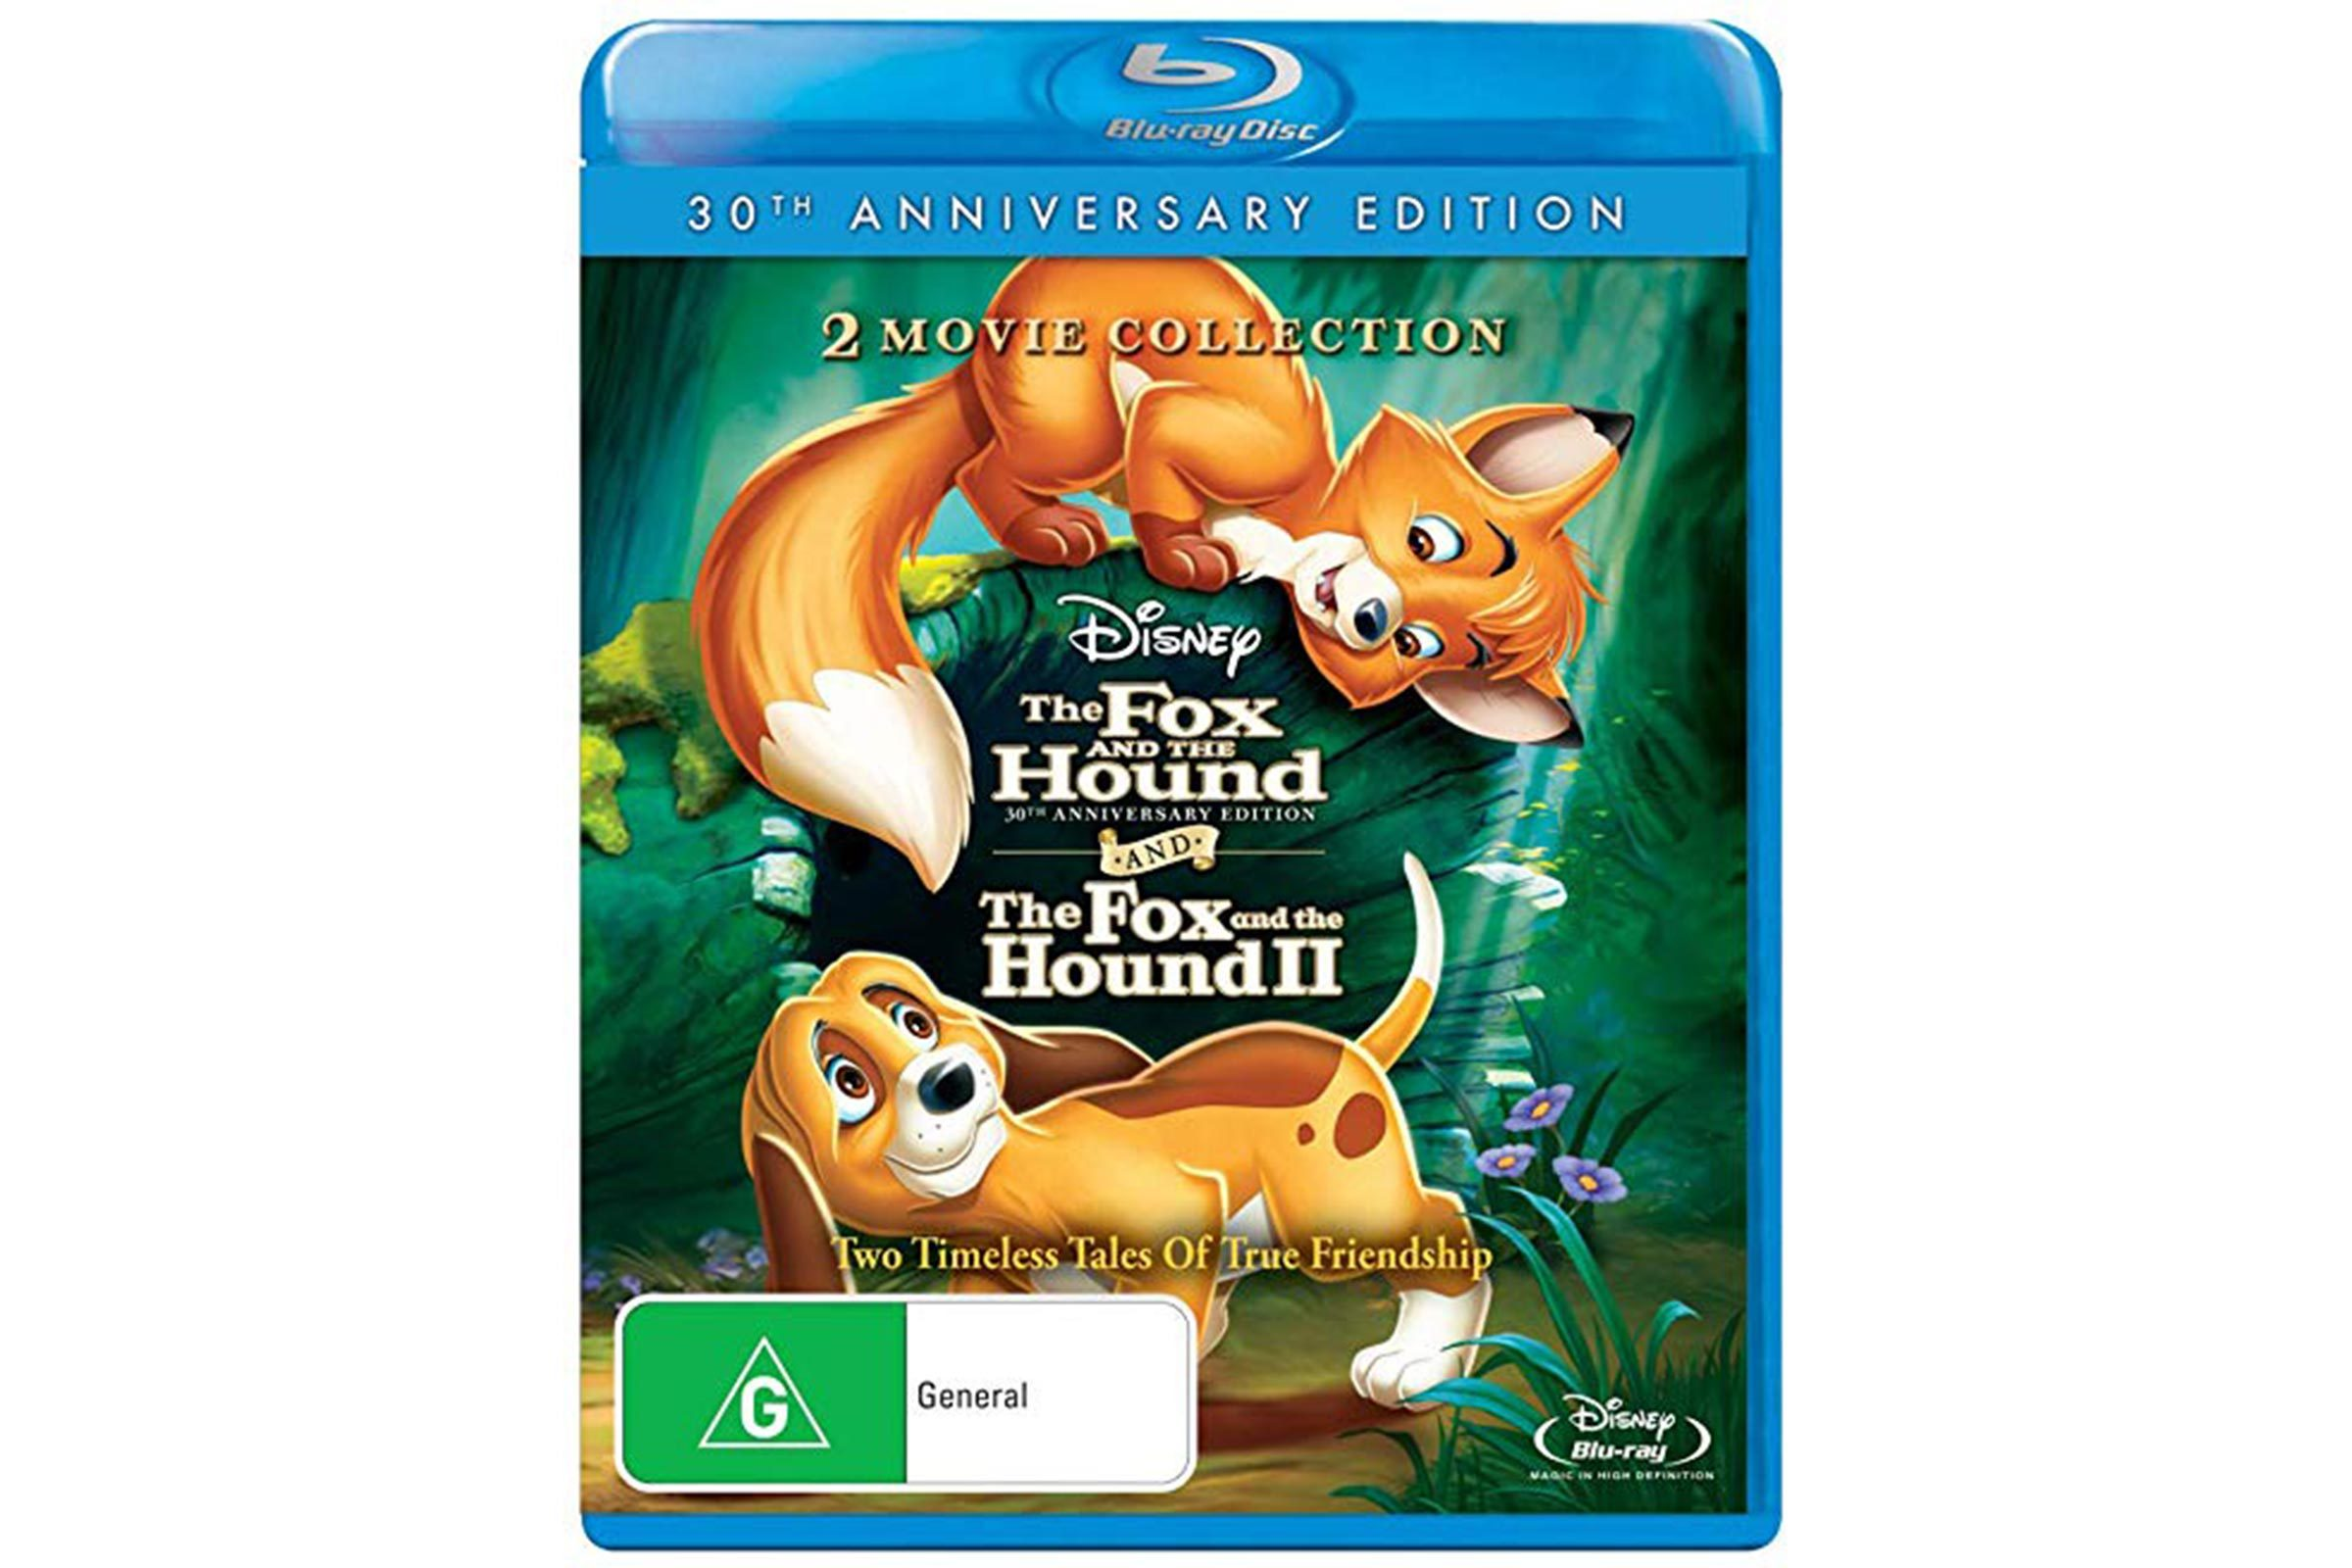 01_The-Fox-and-the-Hound1